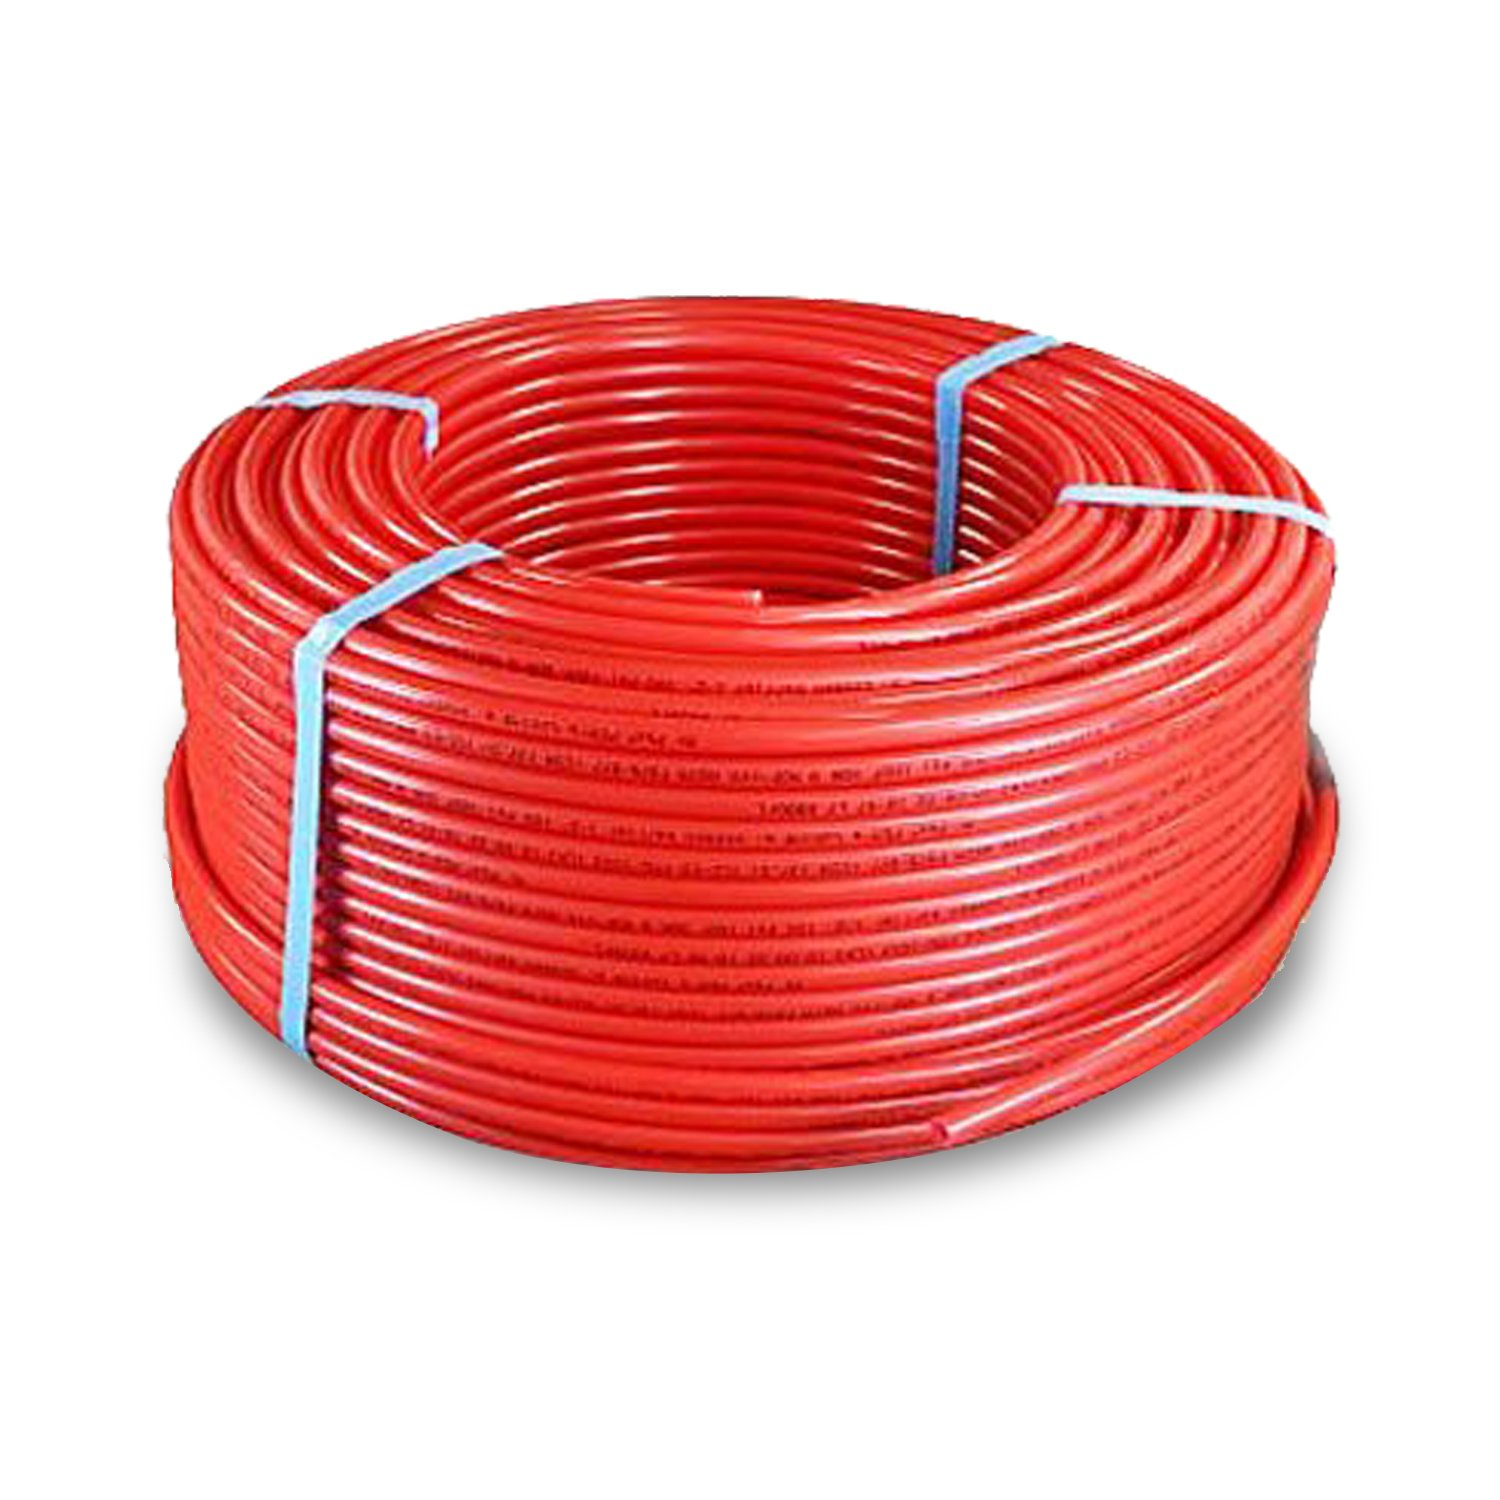 PEXFLOW PFR-R121000 Oxygen Barrier PEX Tubing for Hydronic Radiant Floor Heating Systems, 1/2 Inch, Red by PEXFLOW